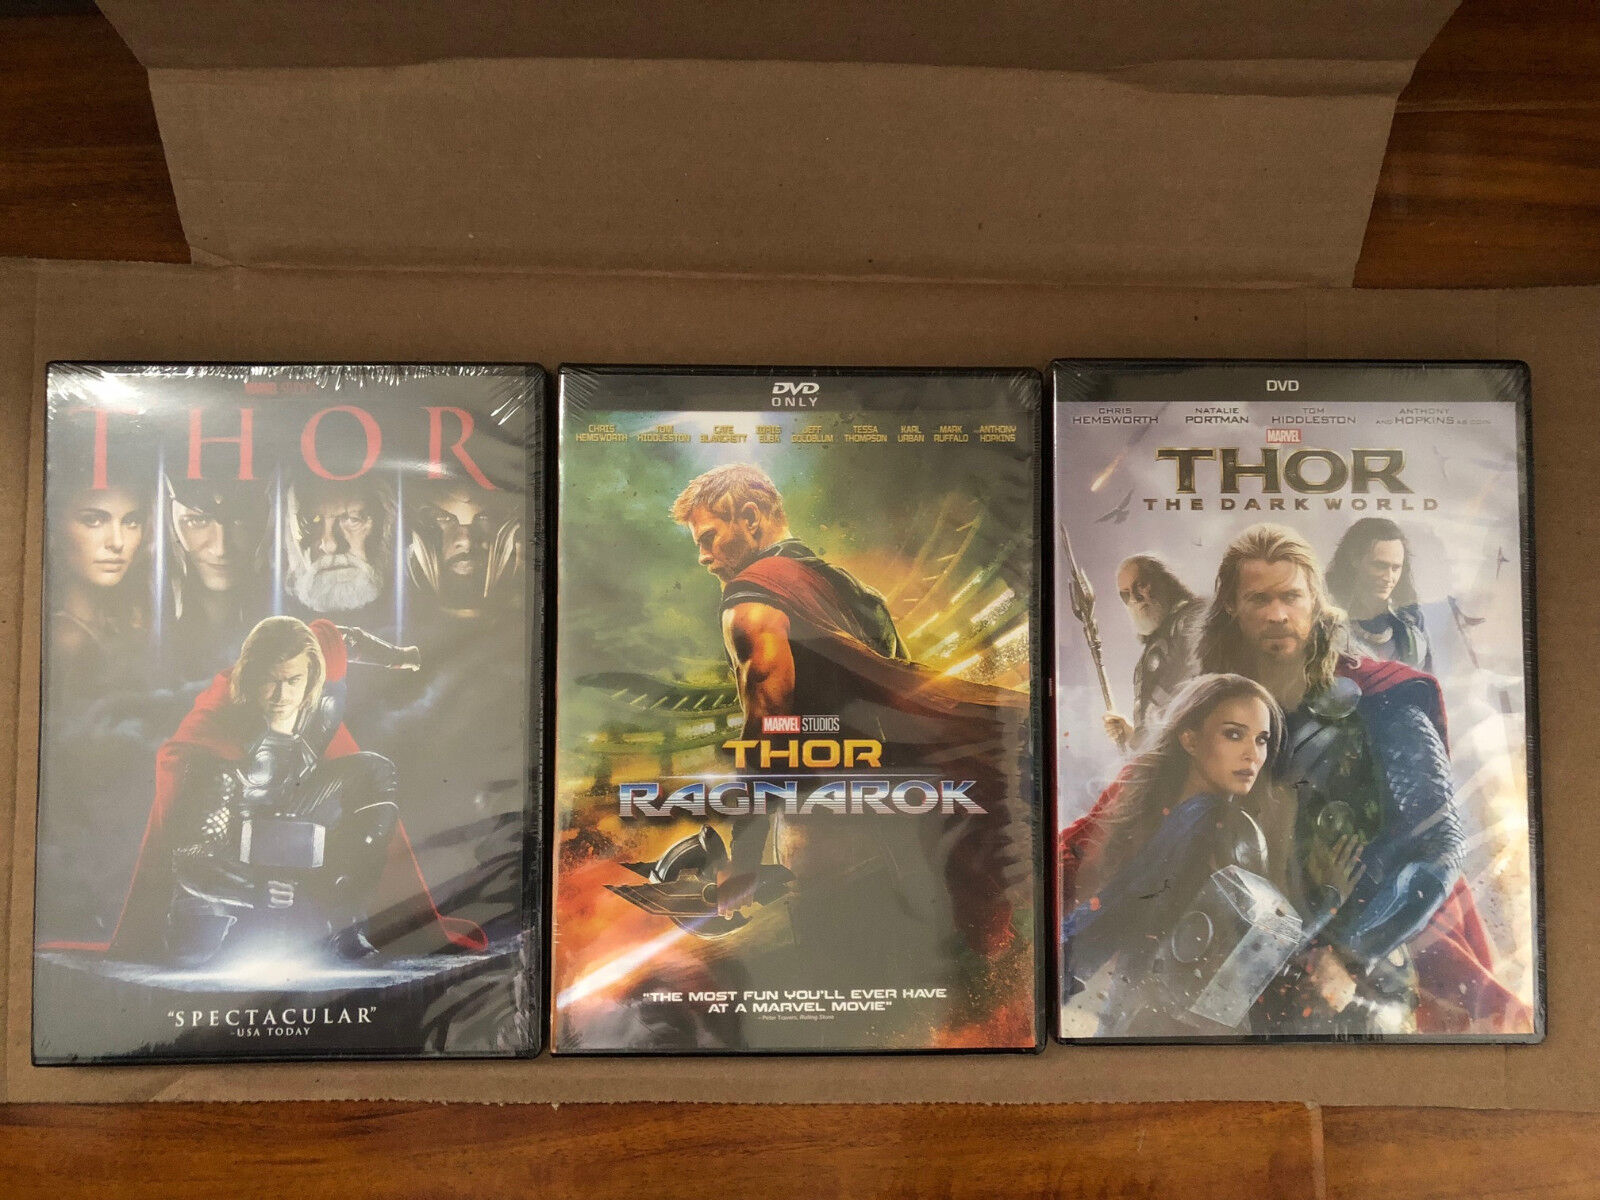 Marvel THOR DVD Trilogy, Thor The Dark World, Thor Ragnarok DVD NEW